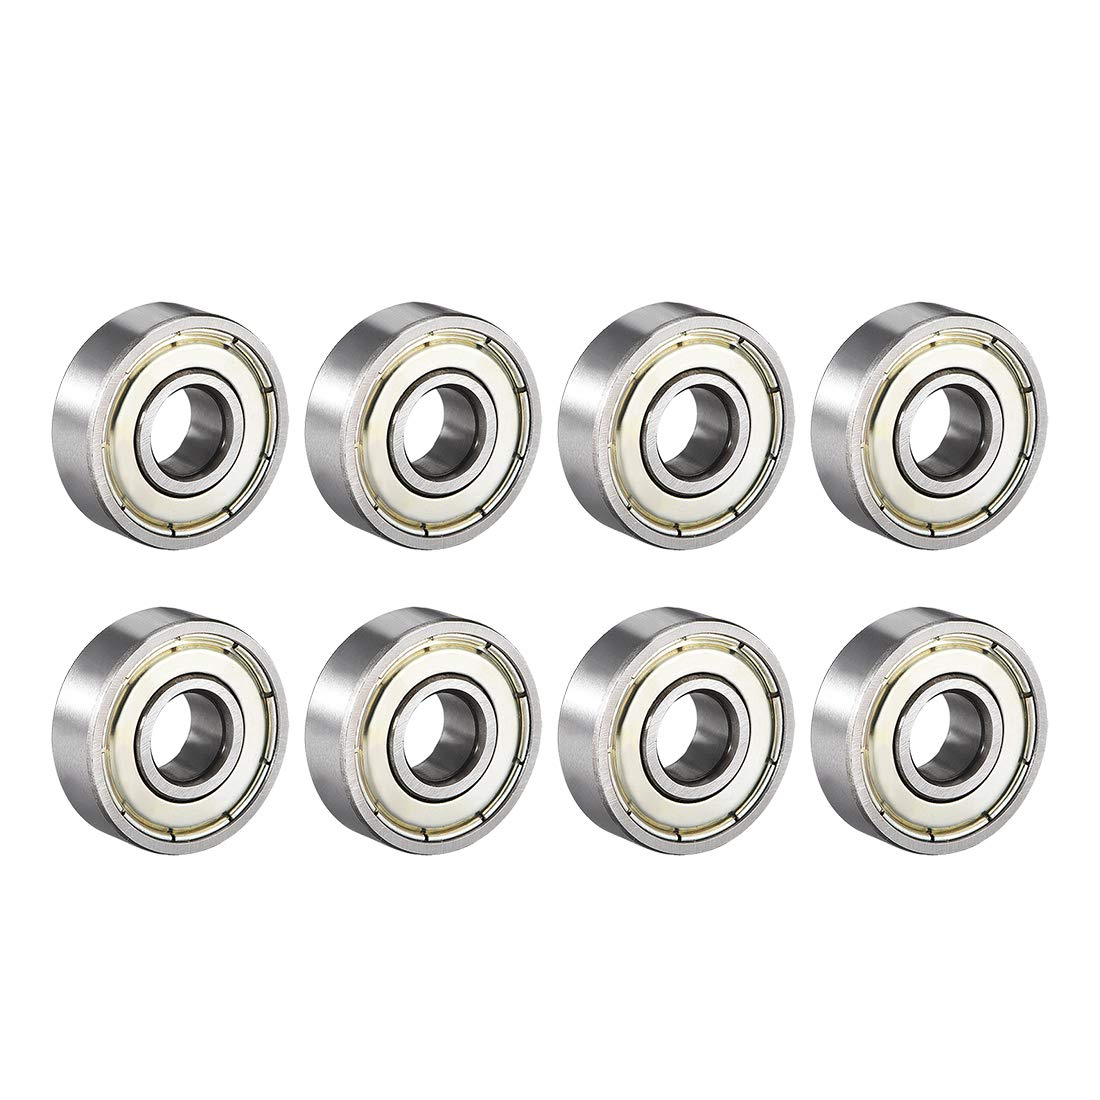 uxcell/® 607ZZ Deep Groove Ball Bearing Double Shield 607-2Z 80017 Pack of 10 7mm x 19mm x 6mm Carbon Steel Bearings